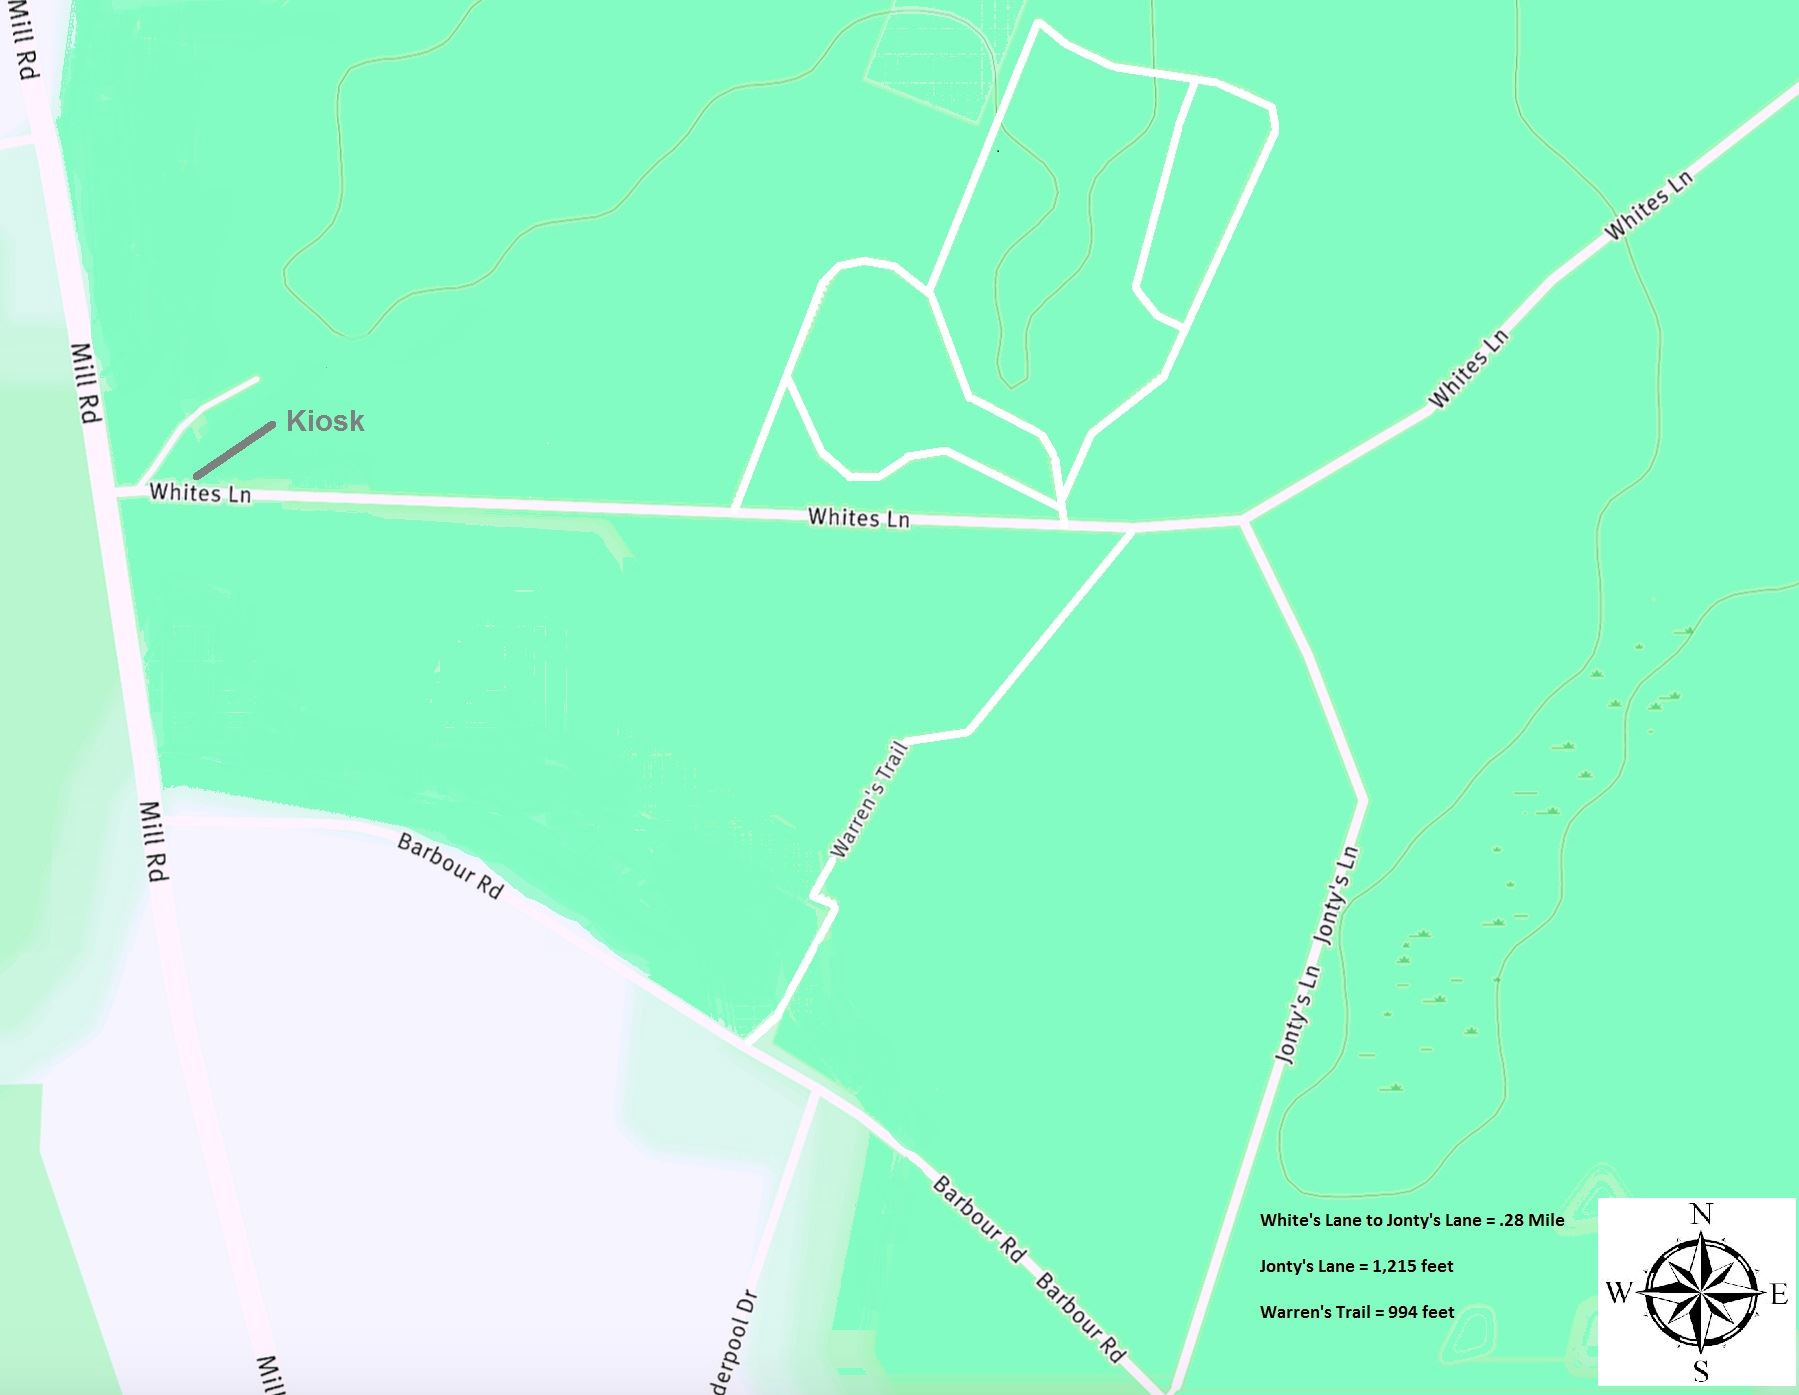 Whites Lane  Map (JPG)